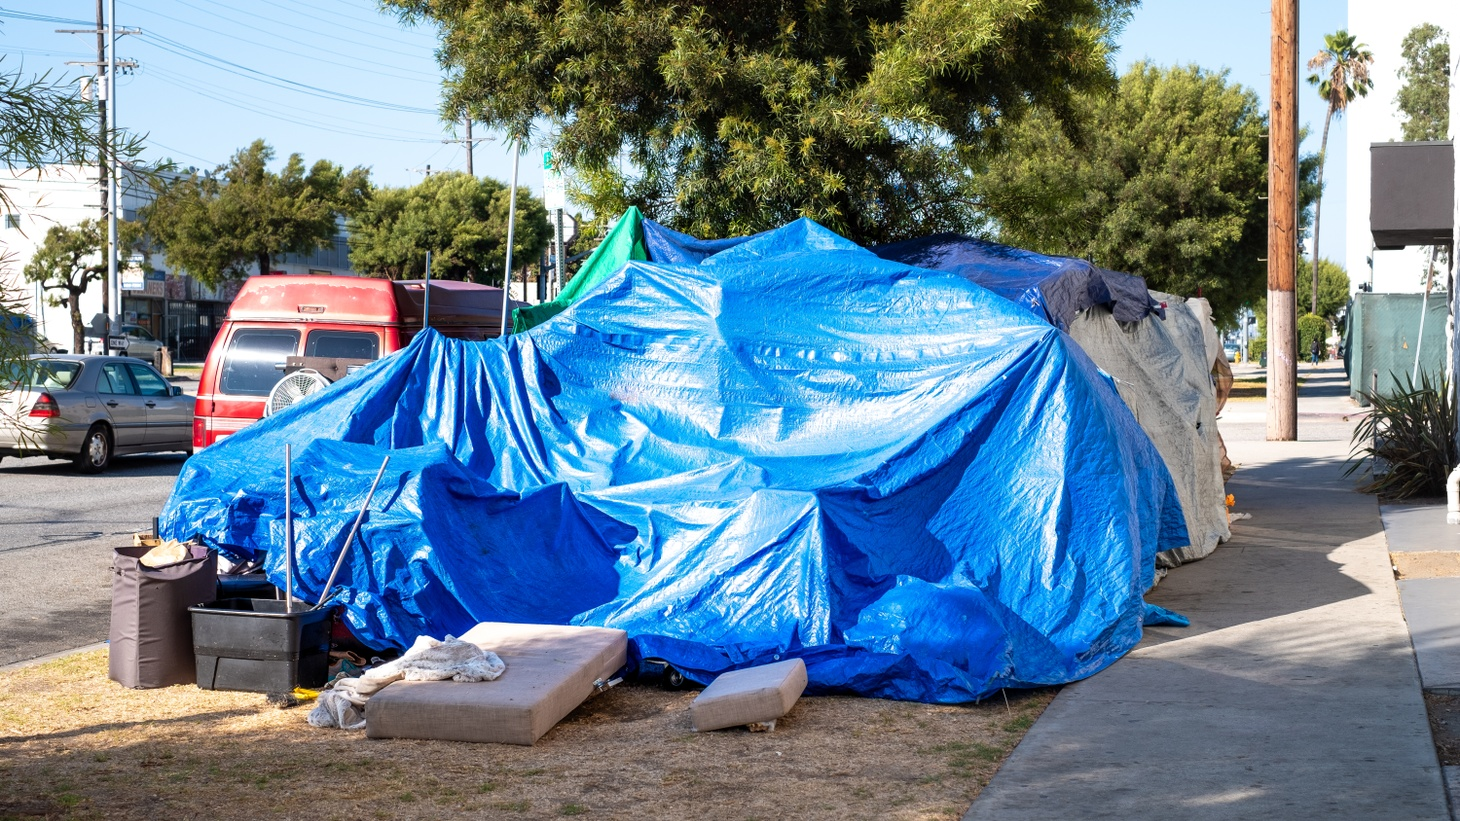 A large homeless encampment sits in Culver City, CA, July 28, 2020. So far this year, more than 900 unhoused people have died in LA County.